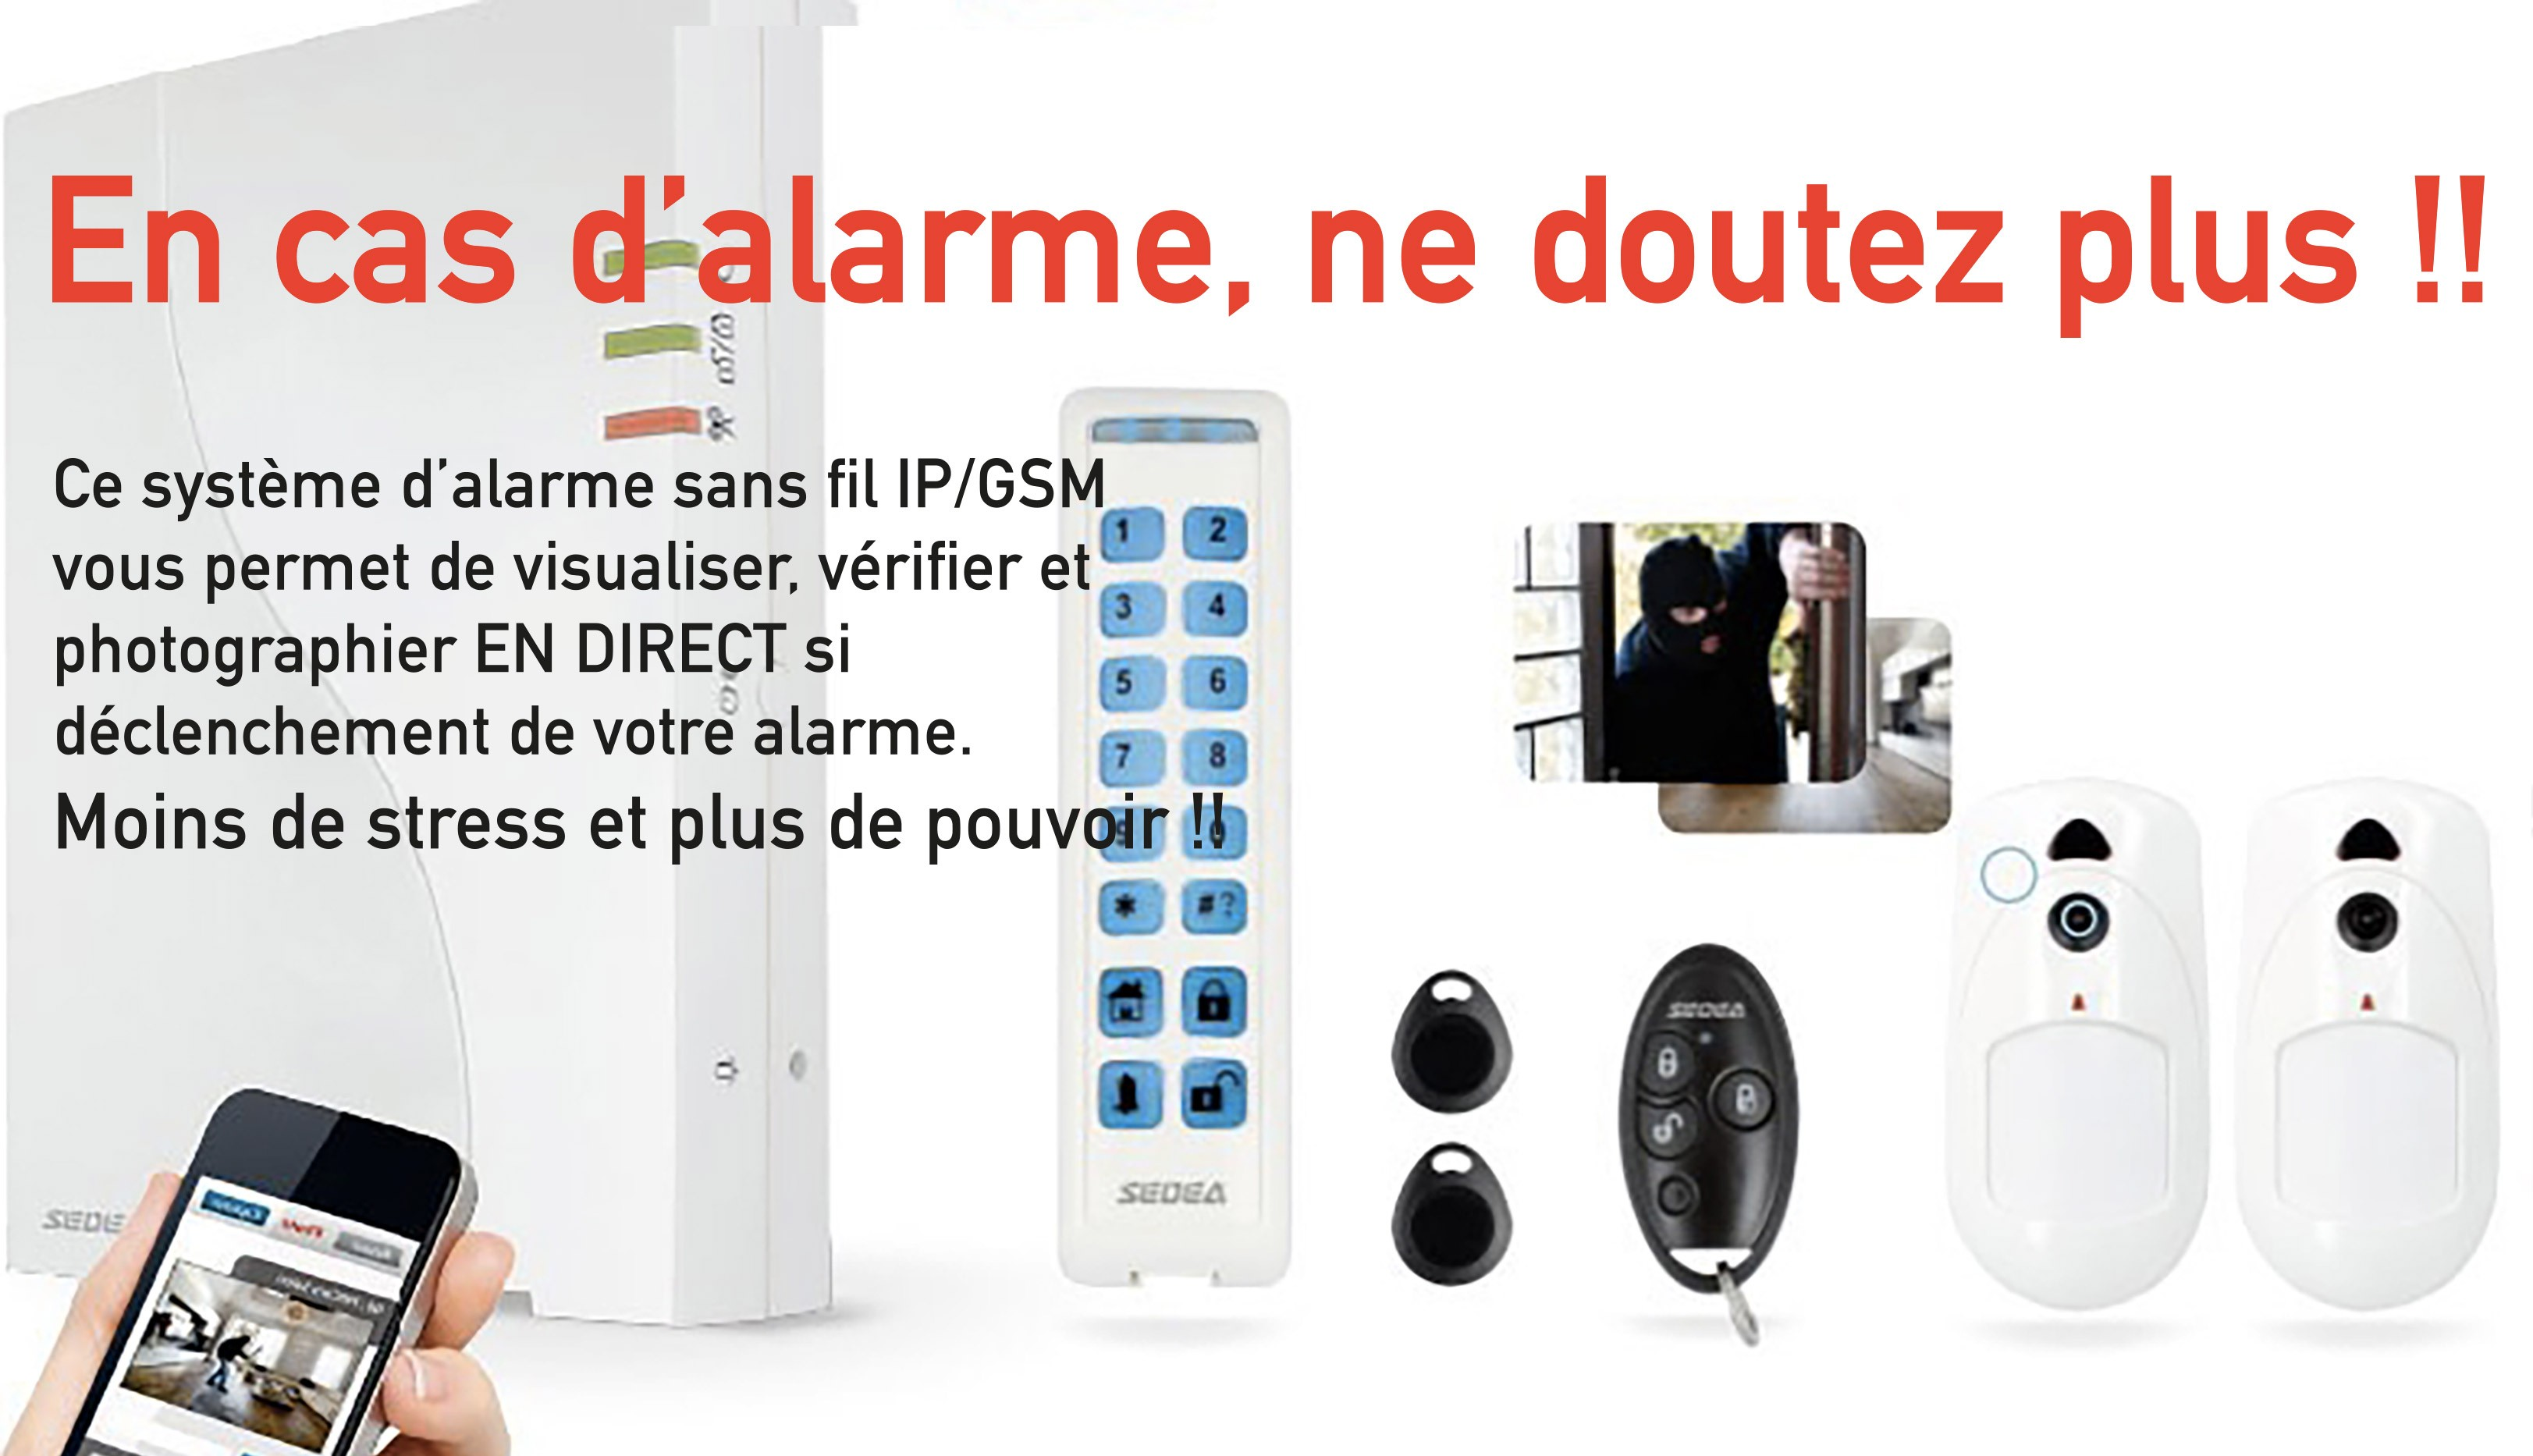 KIT ALARME RADIO S3 visualisation et photos à distance en temps réel